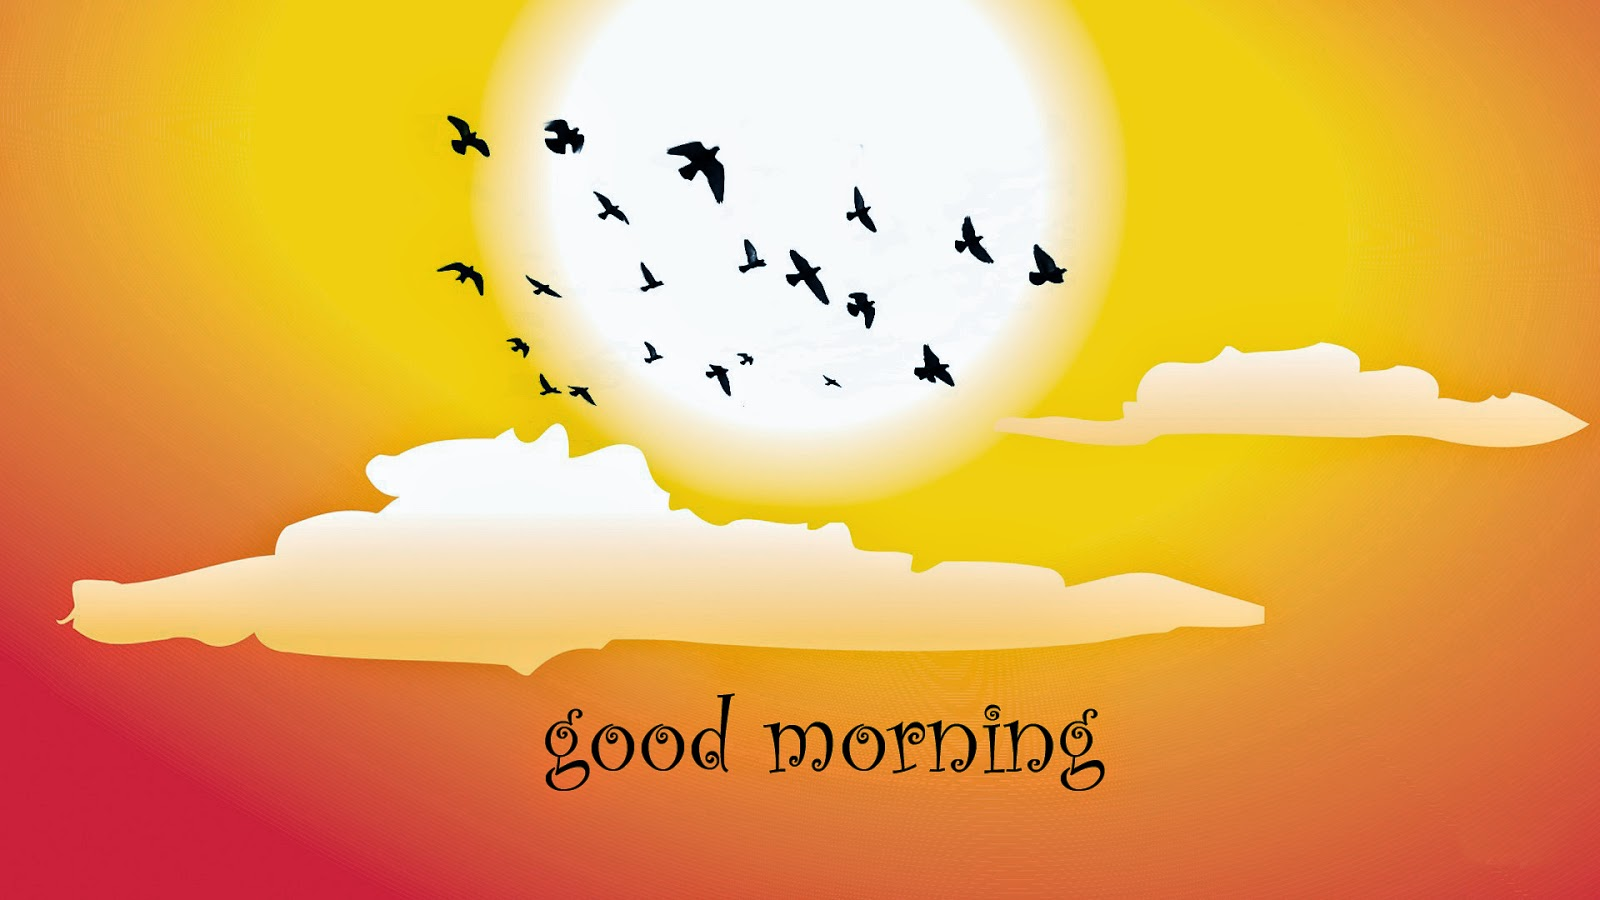 Love Good Morning Wish Wallpaper : Amazing hd wallpapers: Download High Resolution Wallpapers of Good Morning